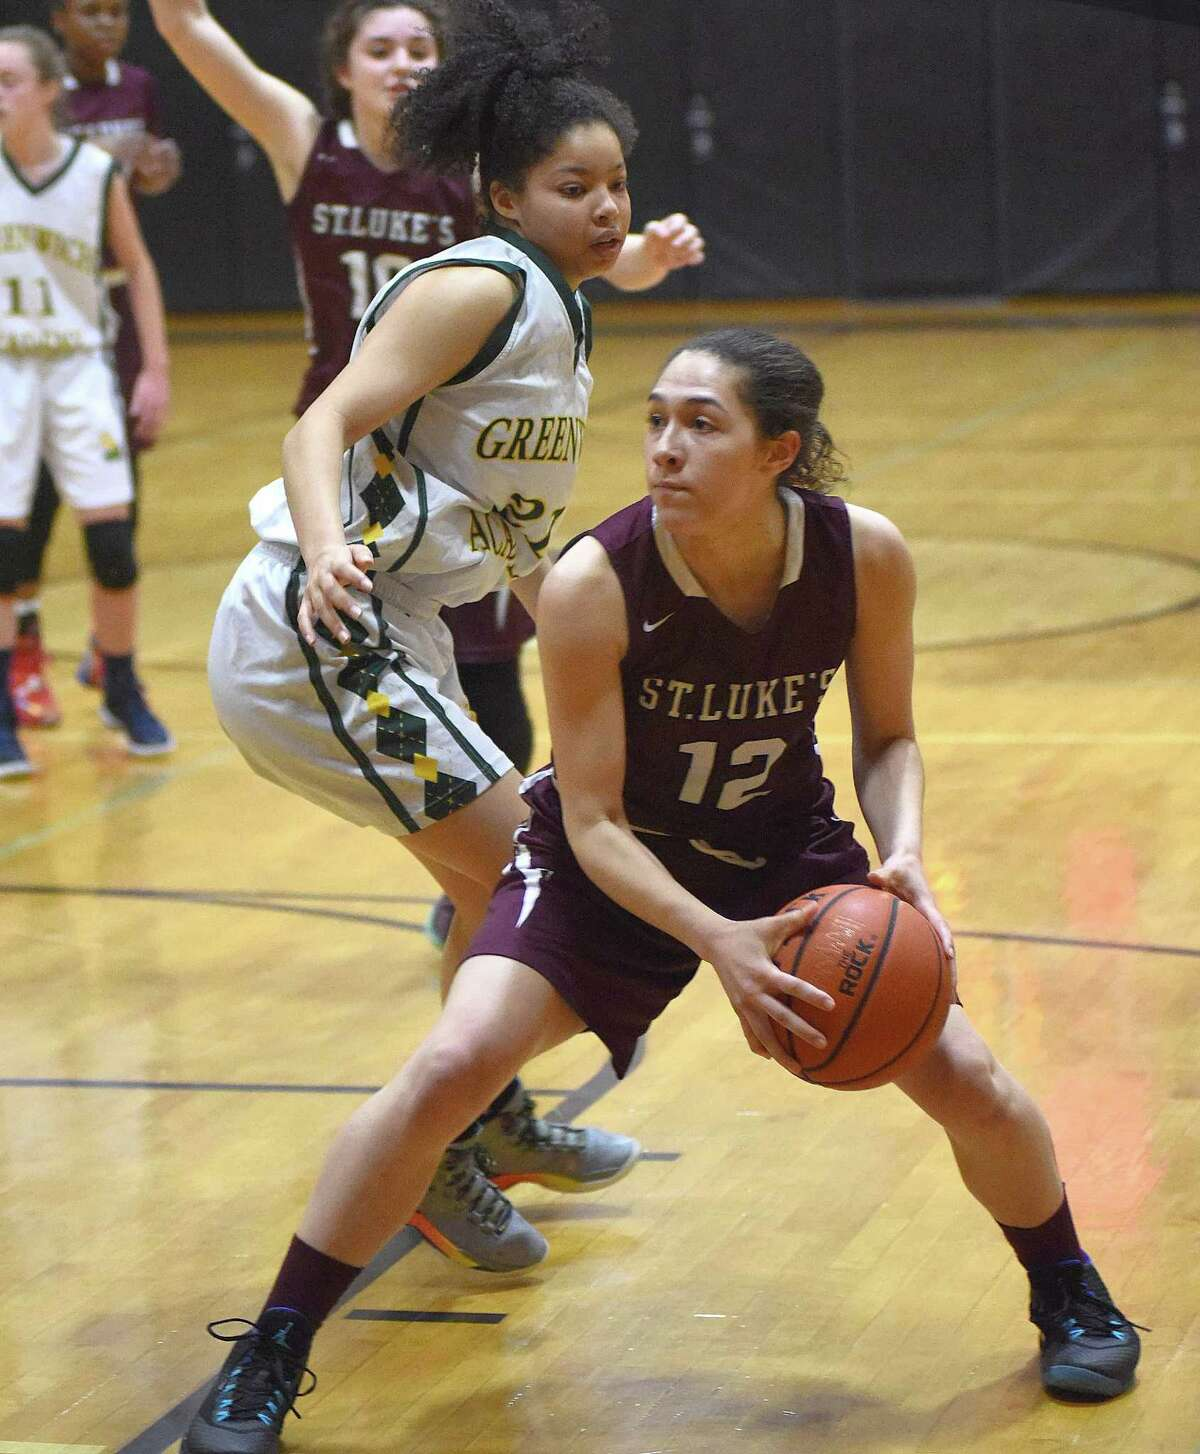 St. Luke's Jada Boggs, right, stops short as Greenwich Academy defender Olivia Davis turns during the first half of Saturday's FAA girls basketball championship game at Carey Gymnasium in New Canaan. St. Luke's won the title with an 82-55 win.